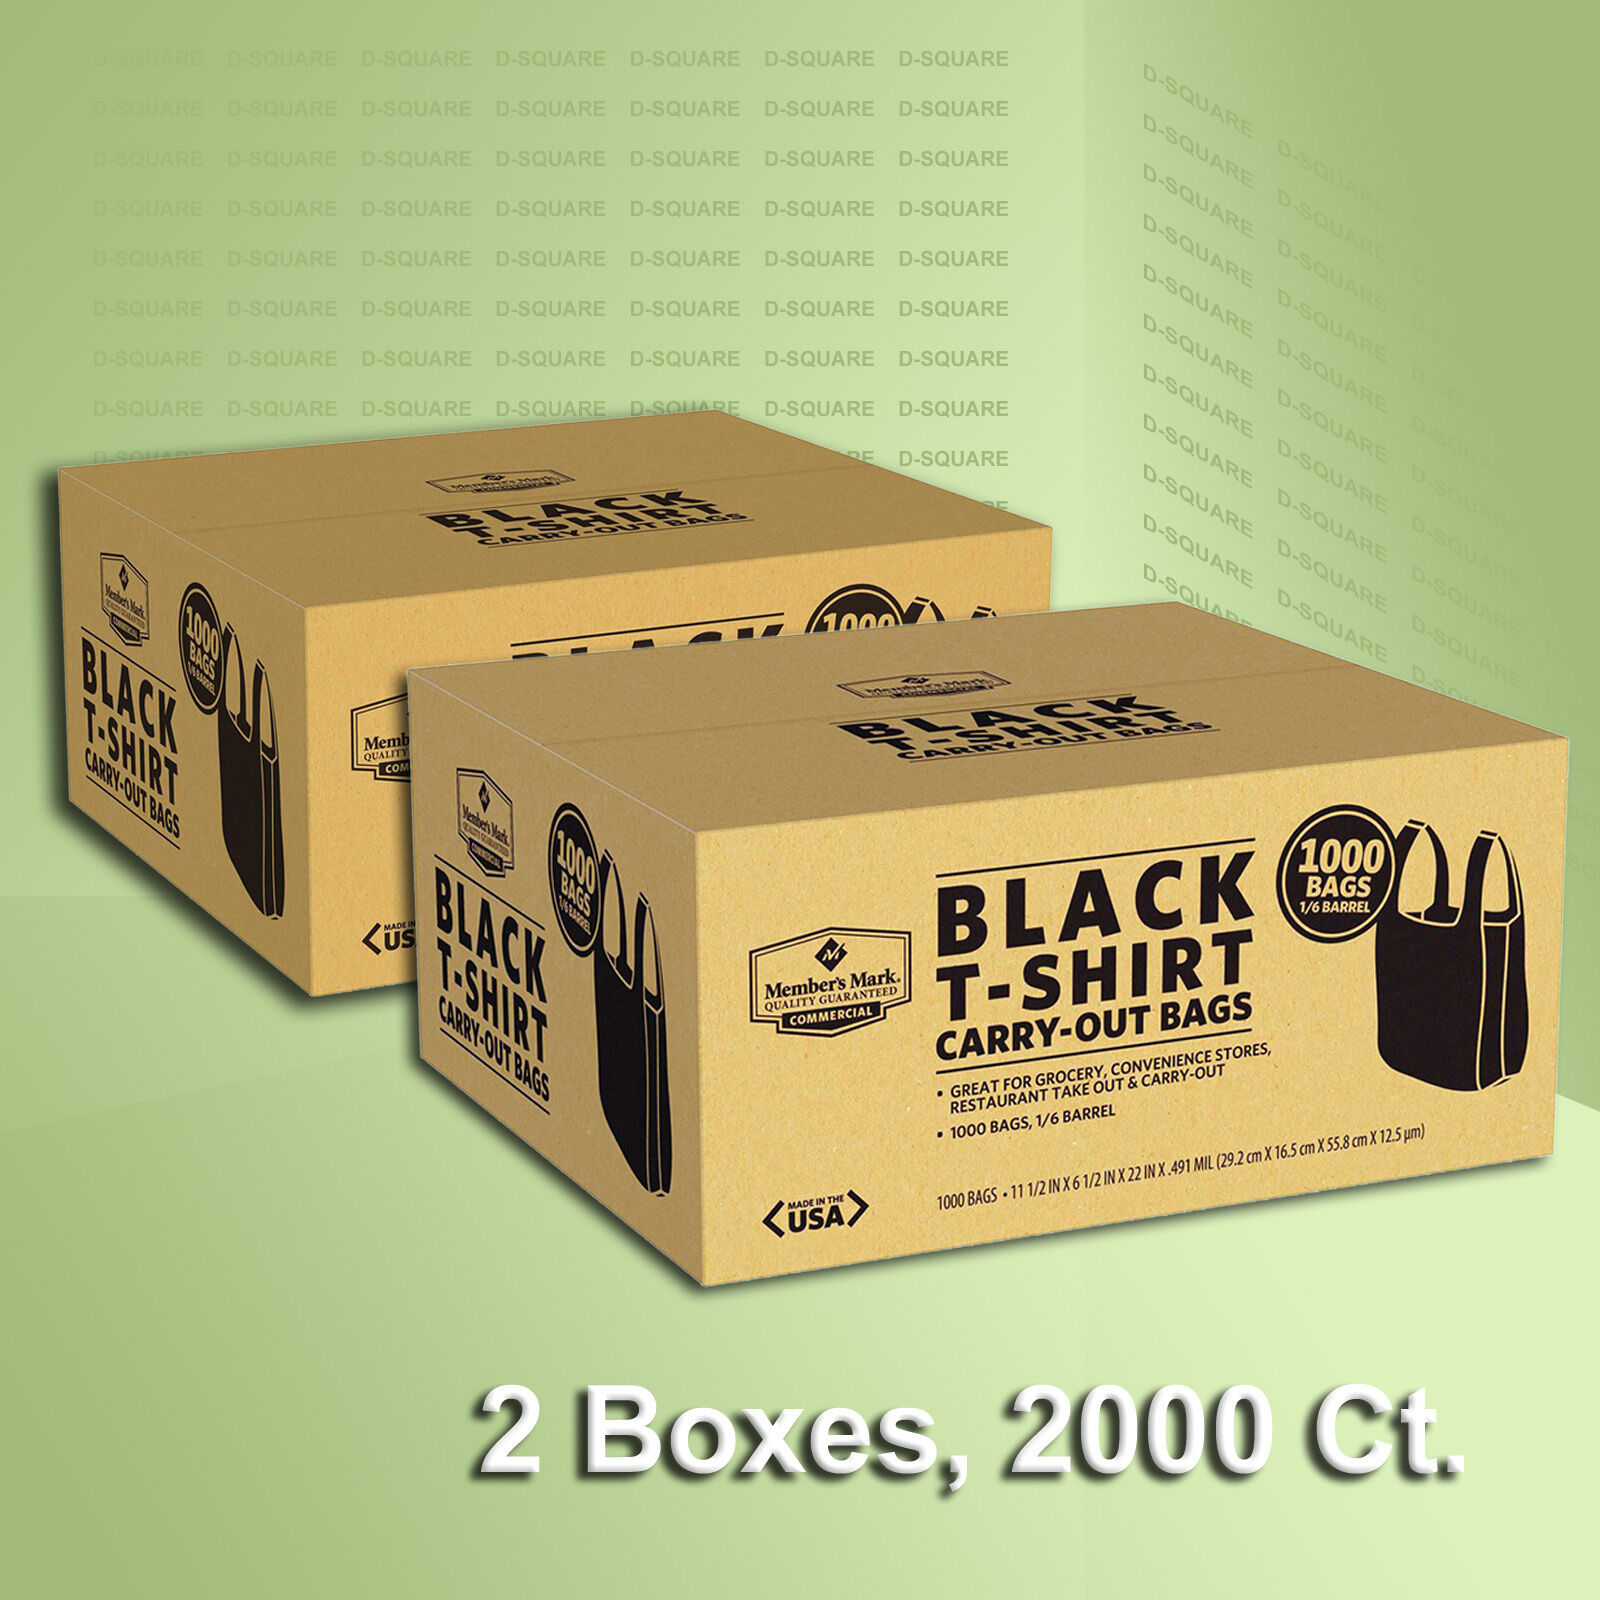 Black t shirt carryout bags - 2 Boxes Black T Shirt Carry Out Plastic Bags Recyclable Retail Grocery 2000 Ct 2 Boxes Black T Shirt Carry Out Plastic Bags Recyclable Retail Grocery 2000